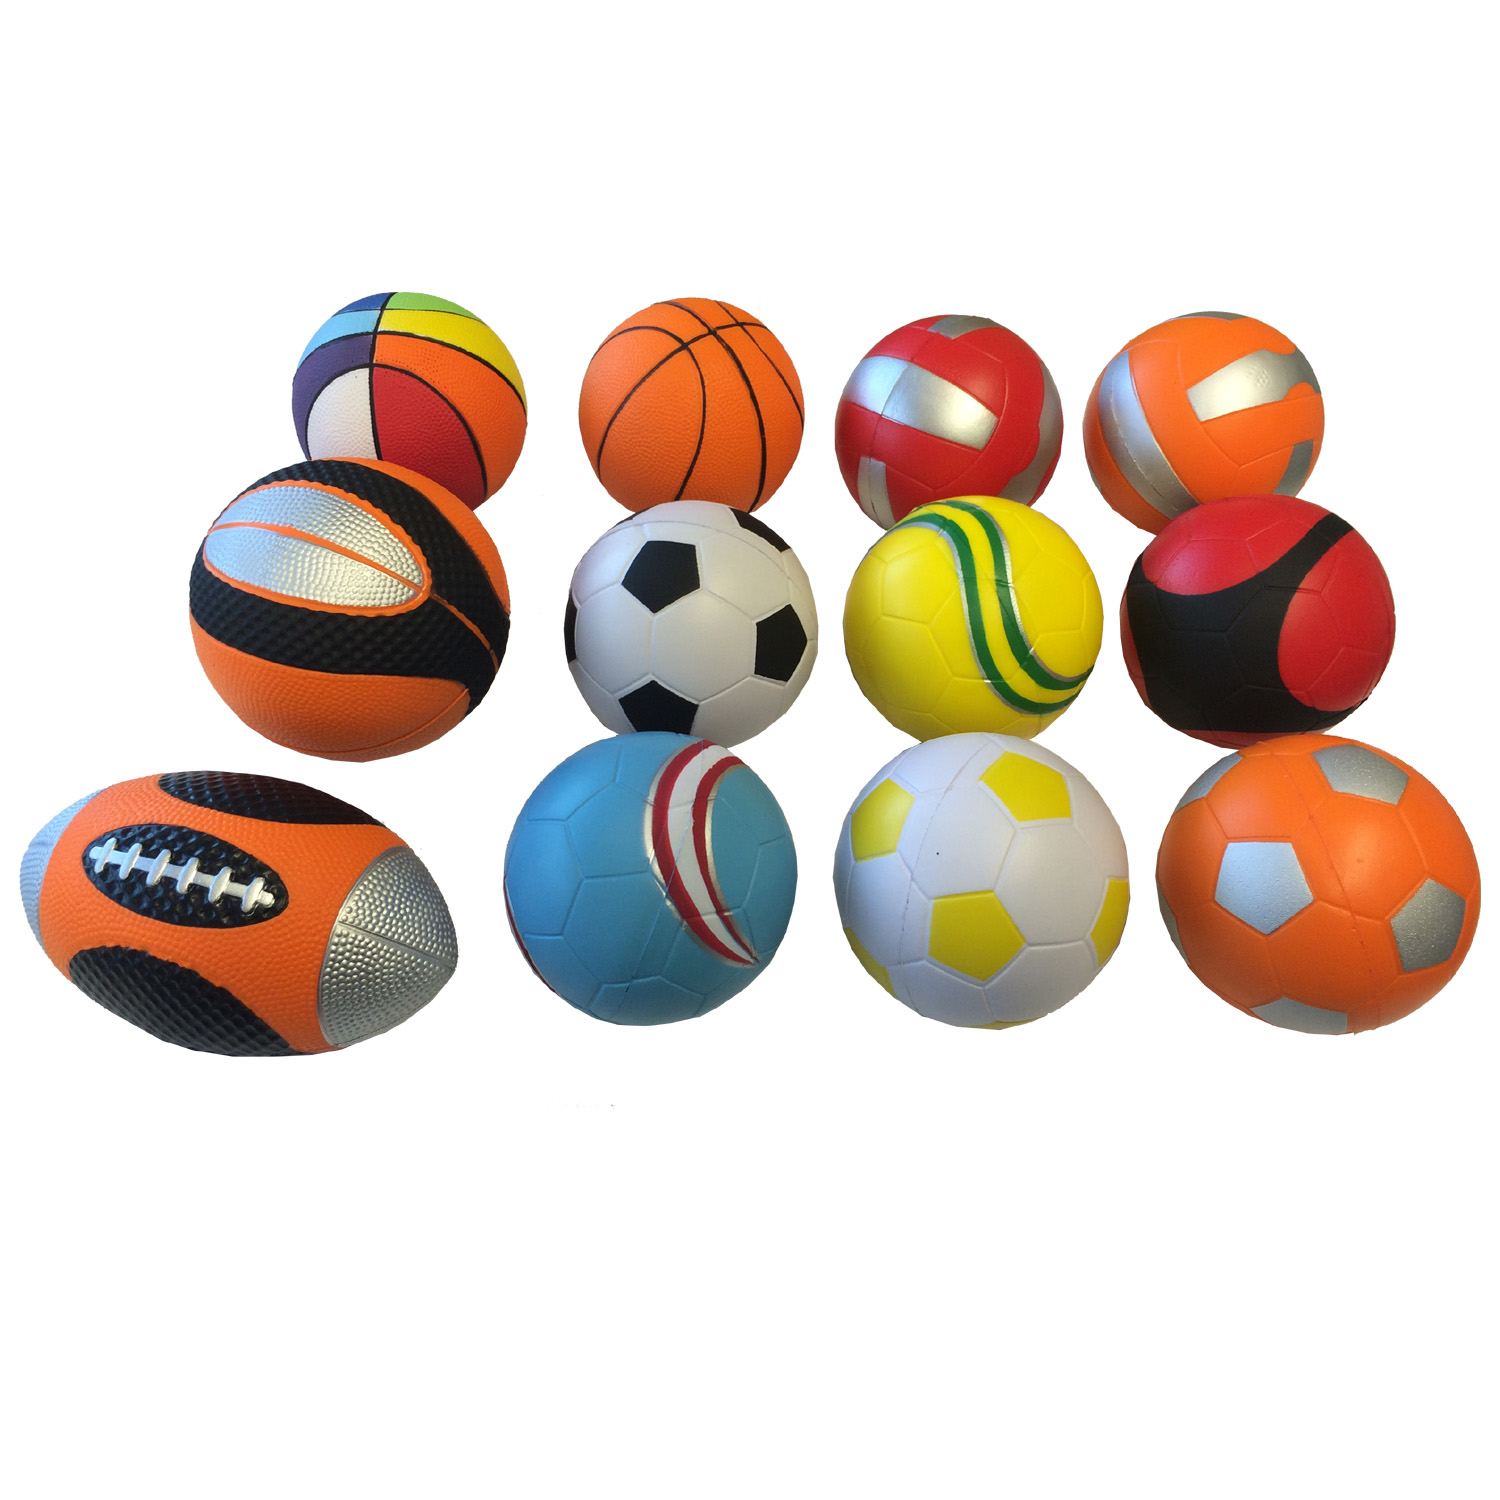 Sportball-Set groß